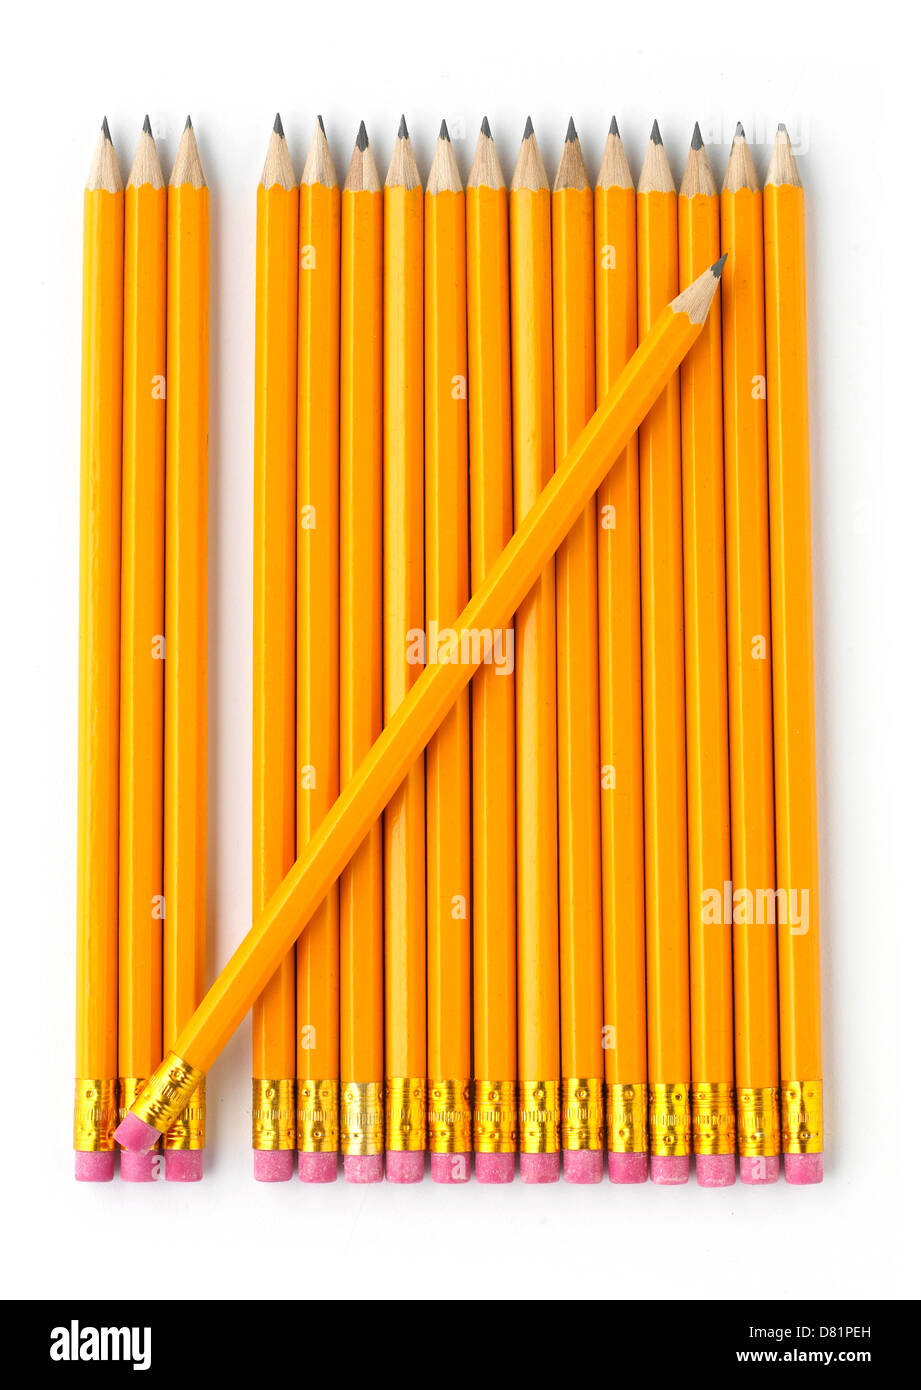 yellow pencils cut out onto a white background - Stock Image